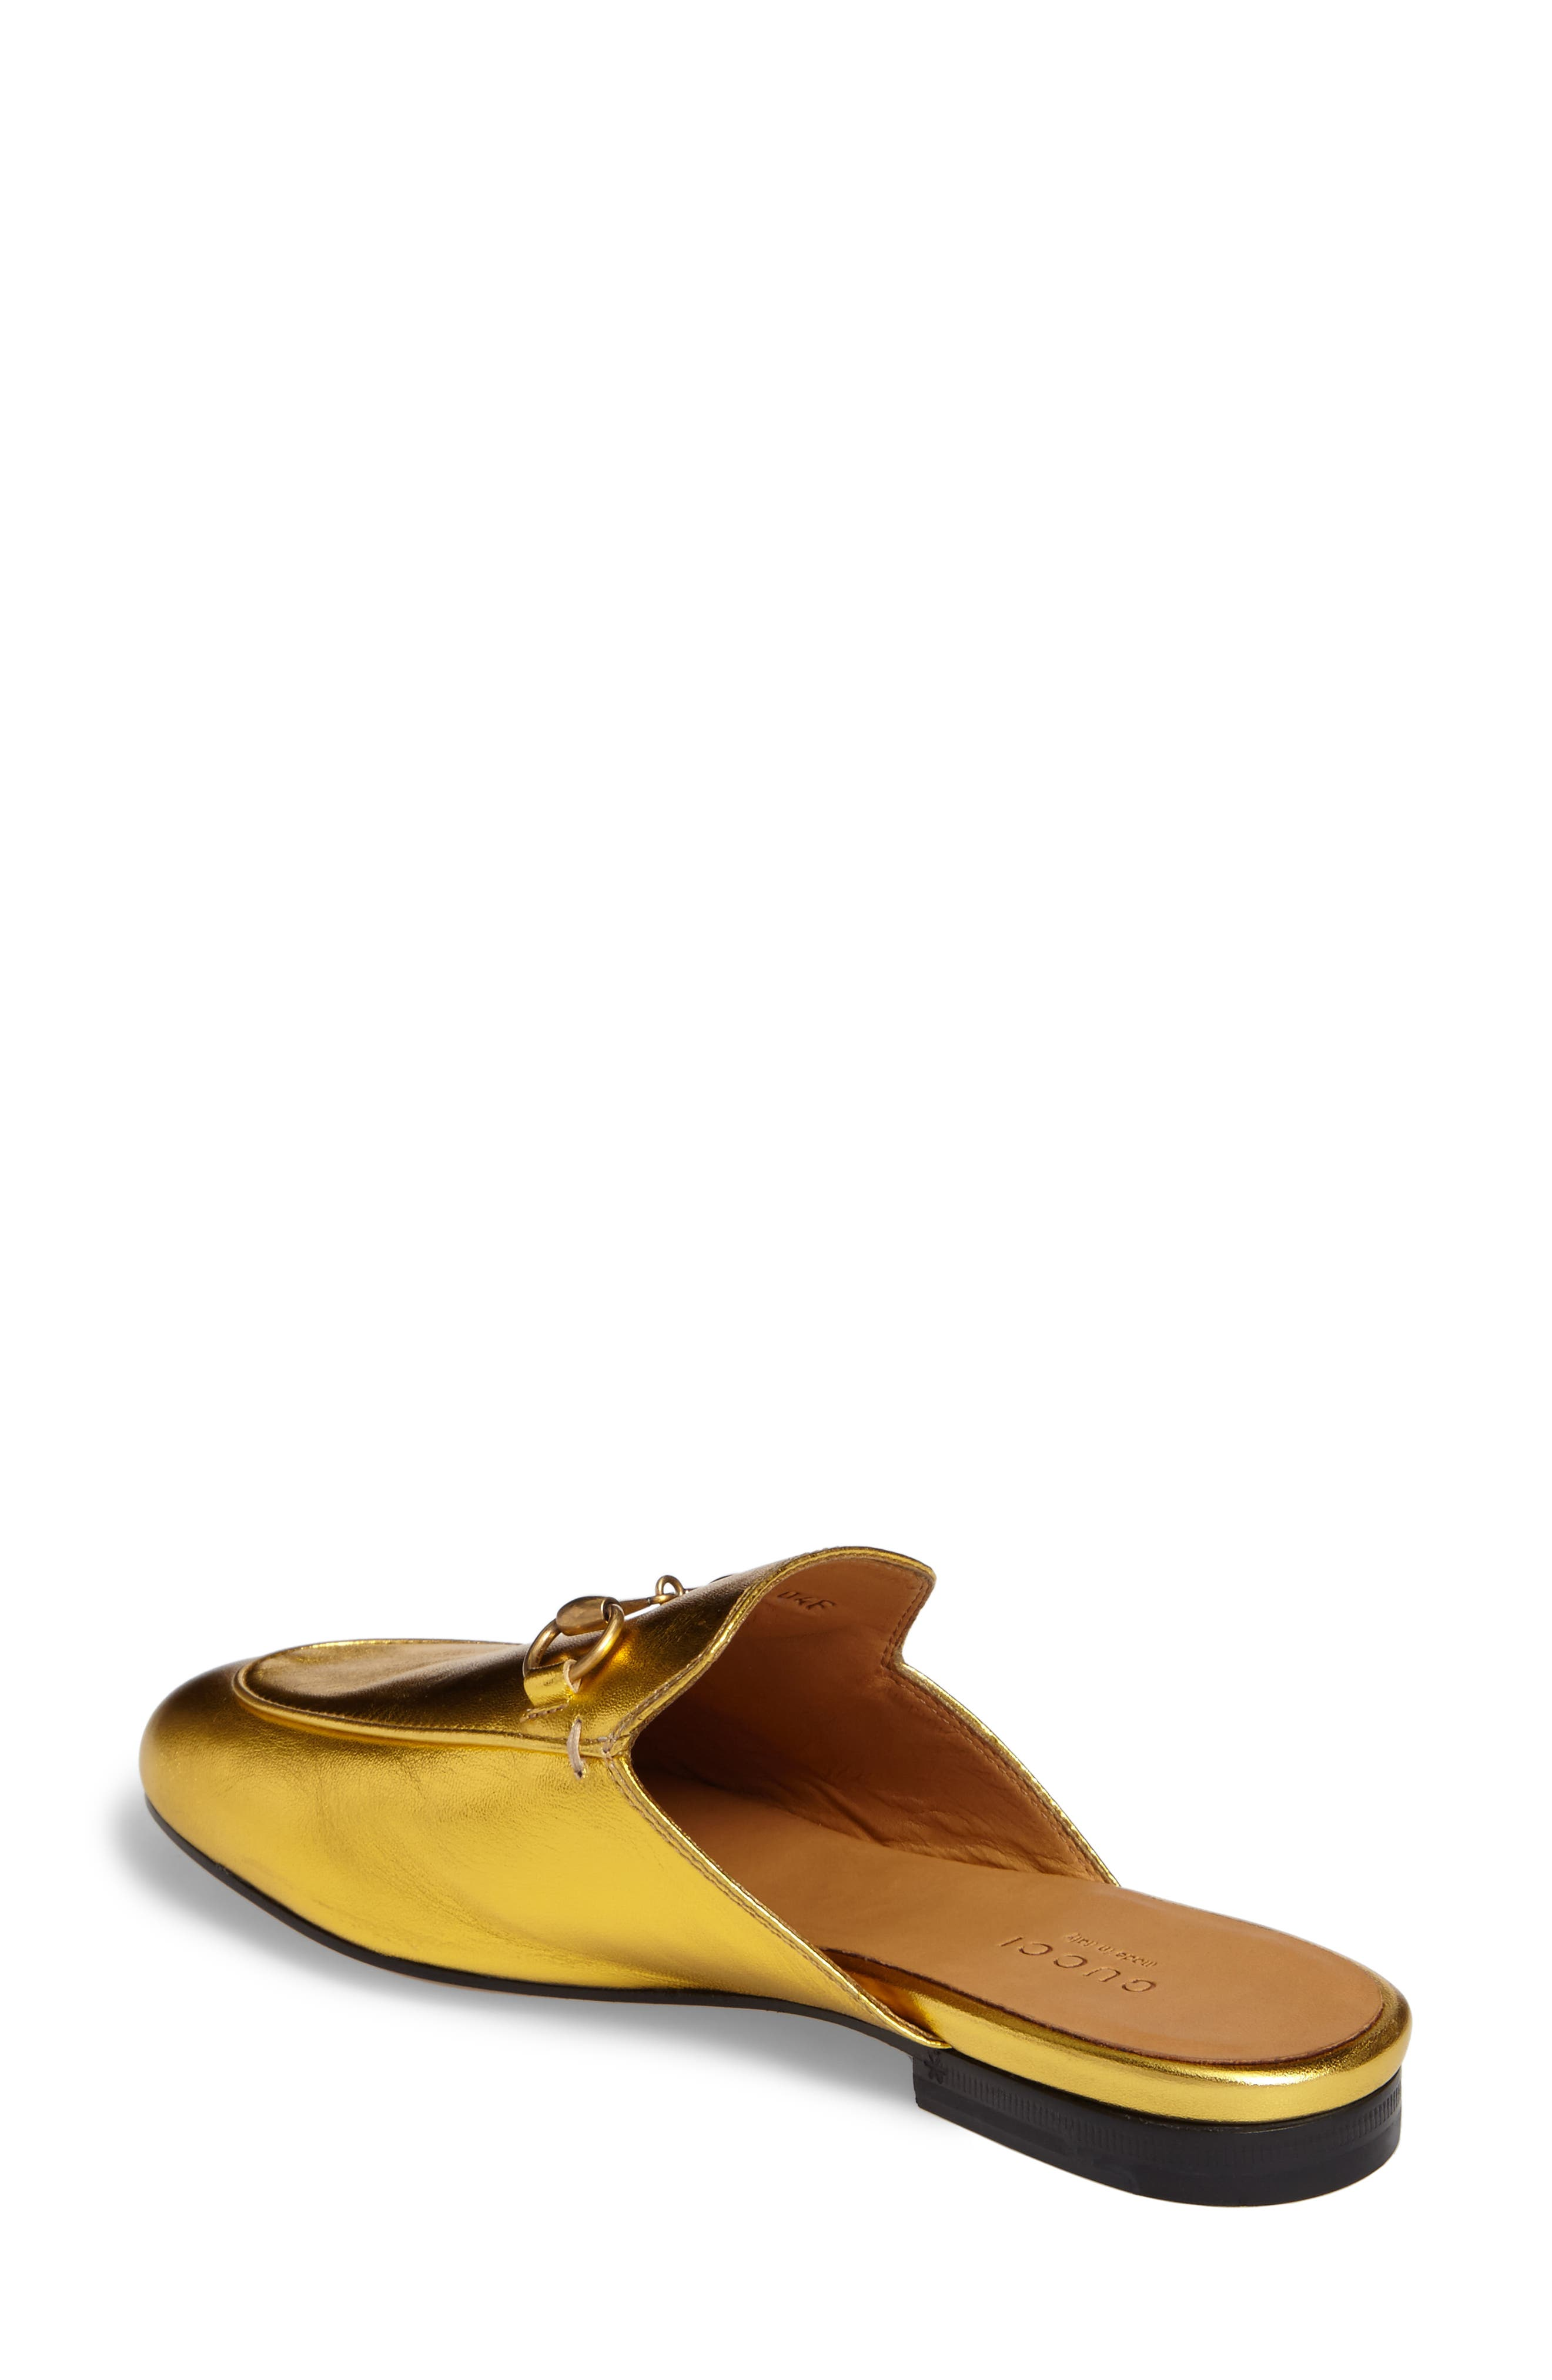 Princetown Loafer Mule,                             Alternate thumbnail 2, color,                             Metallic Gold Leather